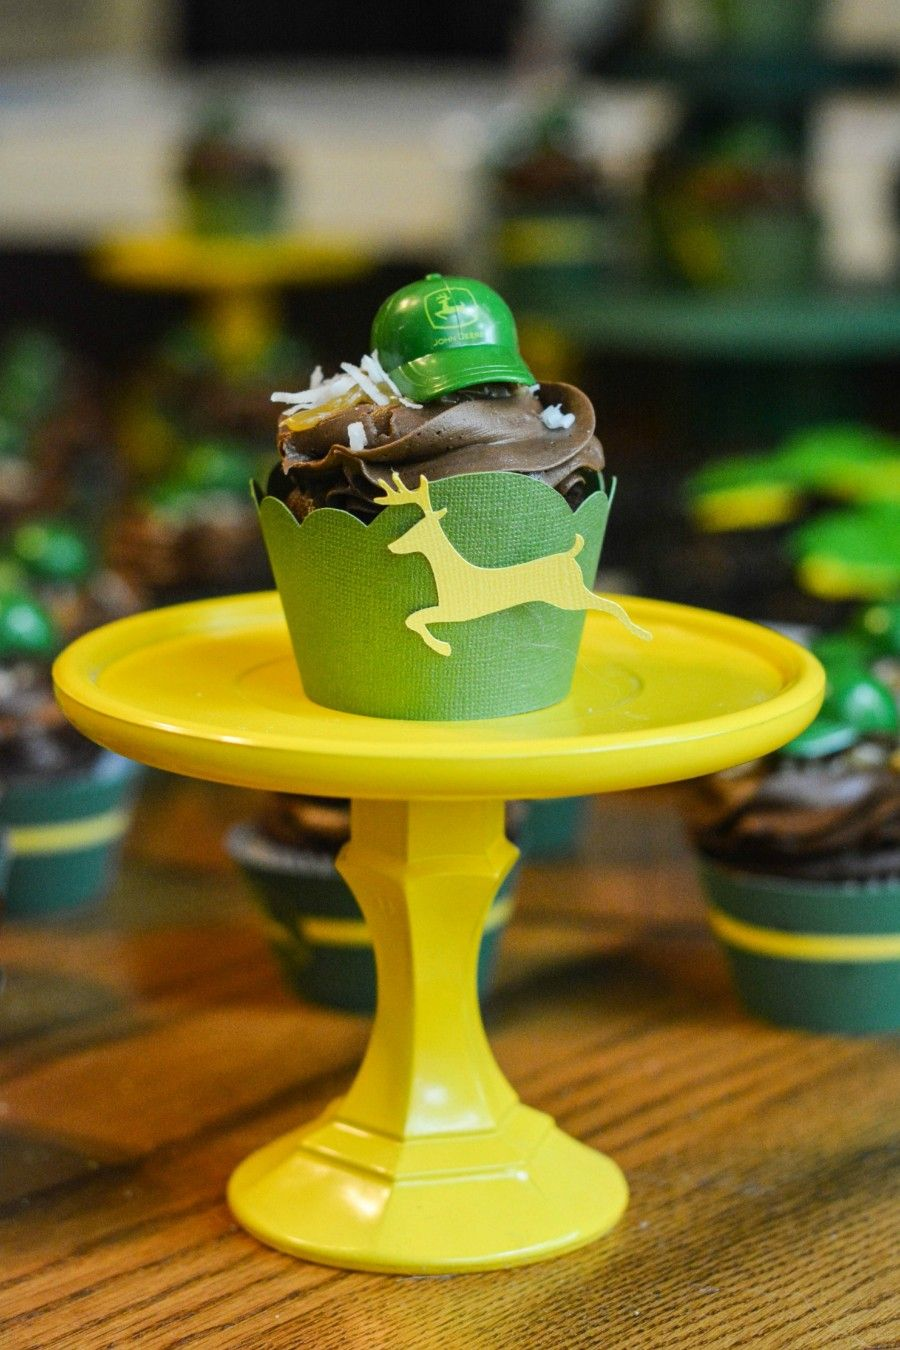 John Deere Birthday Party Ideas for a 3 Year Old | John deere ...